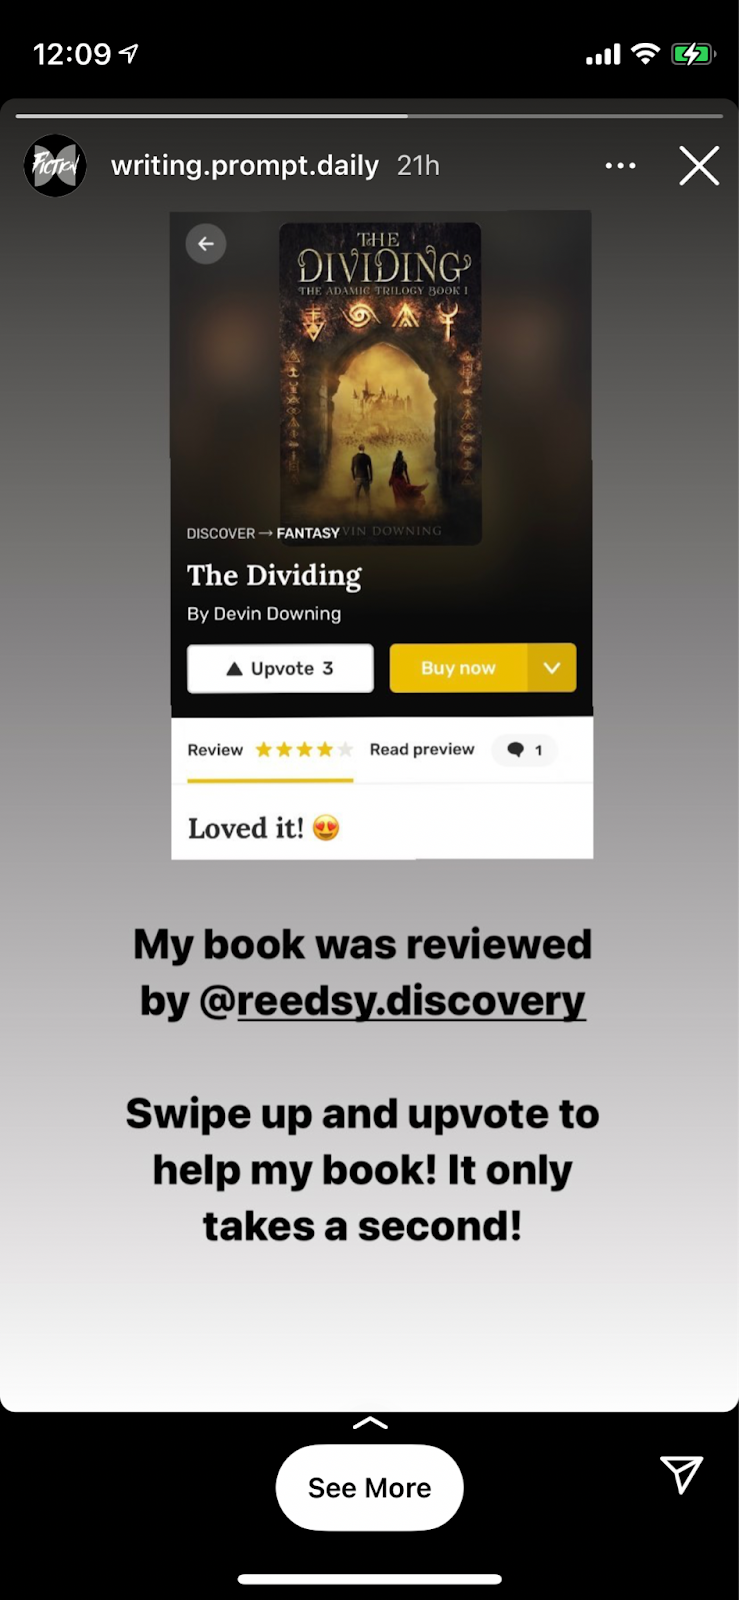 Screenshot of Instagram account Writing Prompts Daily using Swipe Up feature